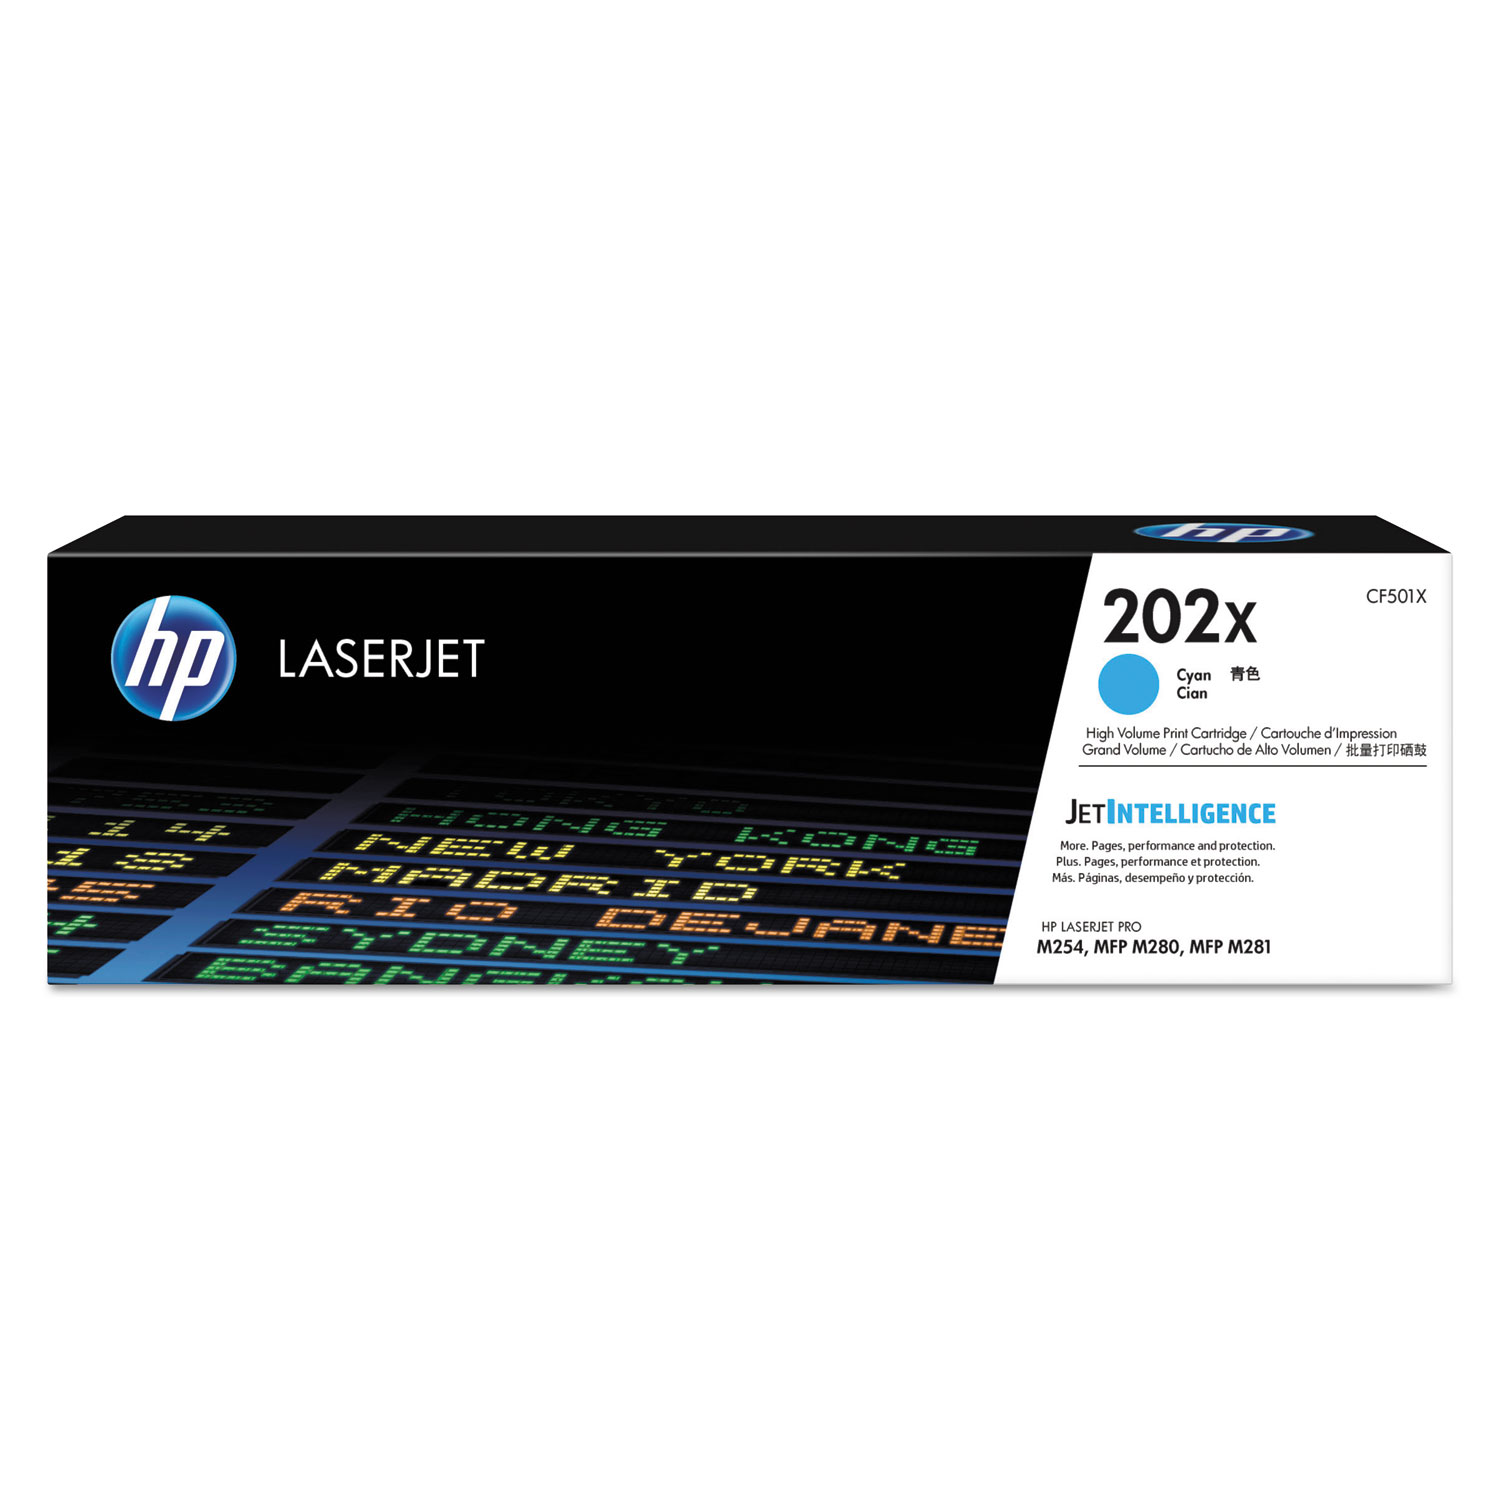 HP 202X CF501X High Yield Cyan Original Toner, 2500 Page-Yield